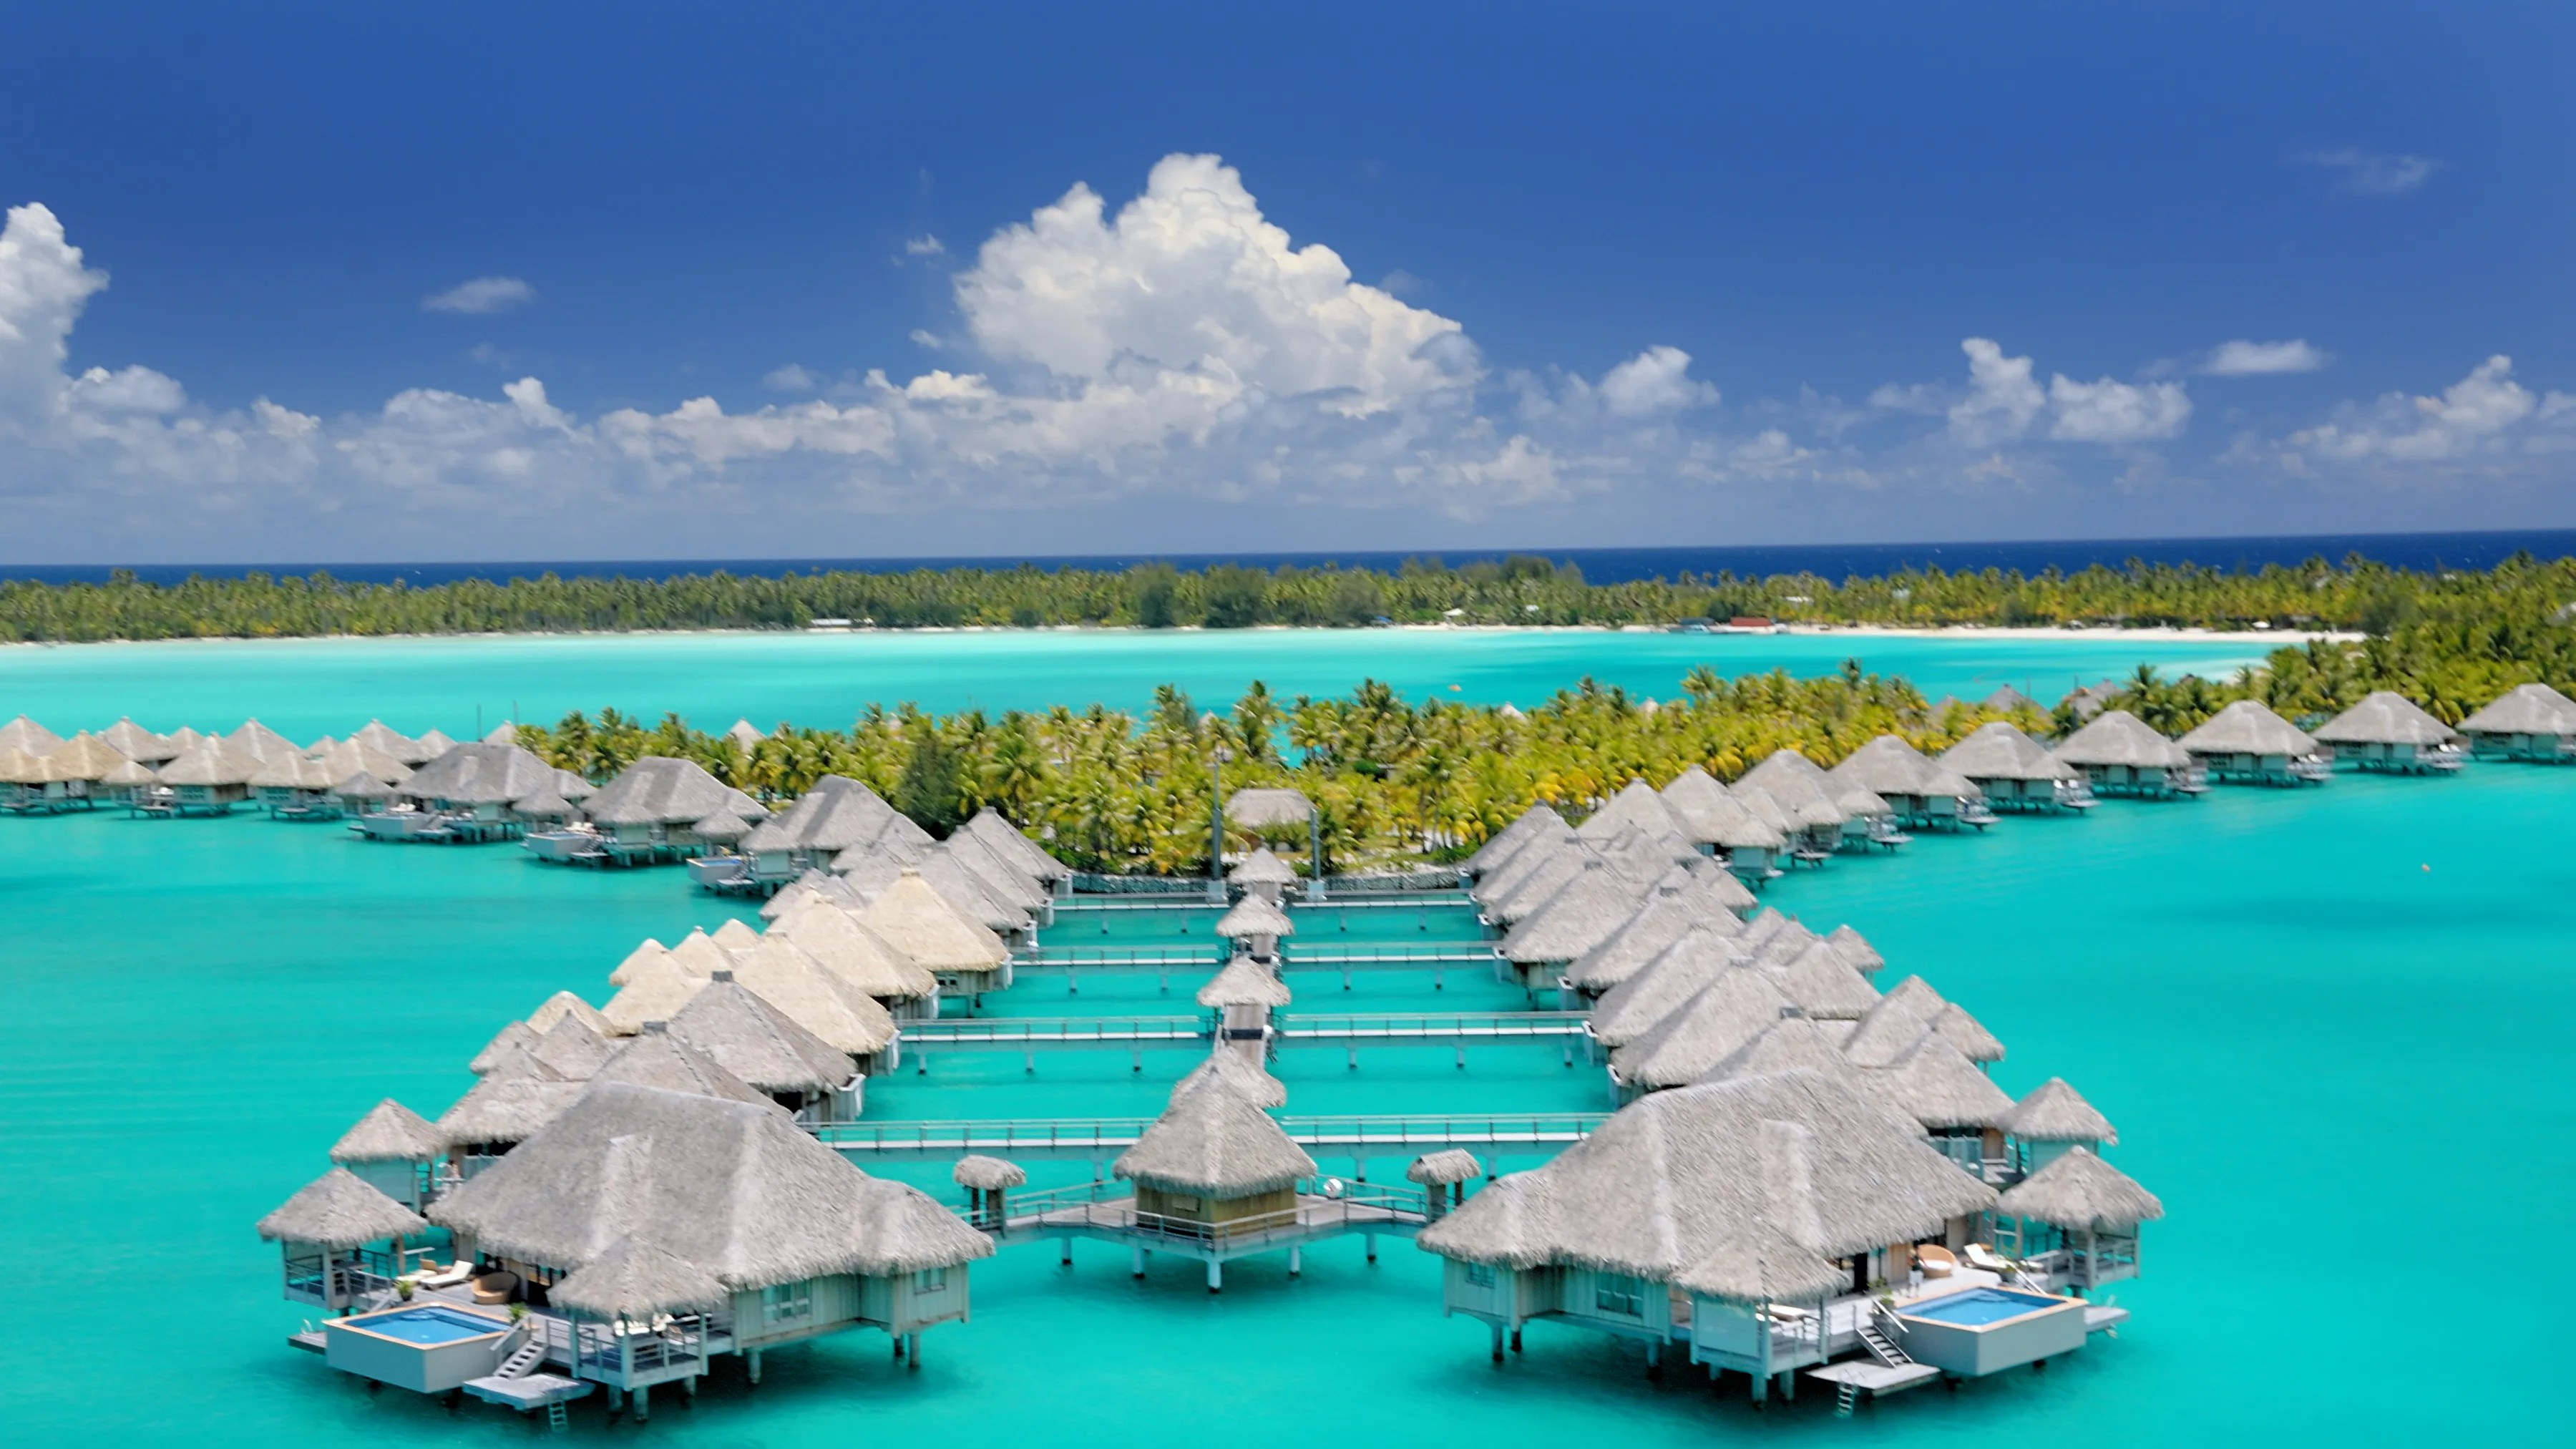 Jacuzzi Full Moon Underwater Pool Light The 11 Most Incredible Overwater Bungalows In The World